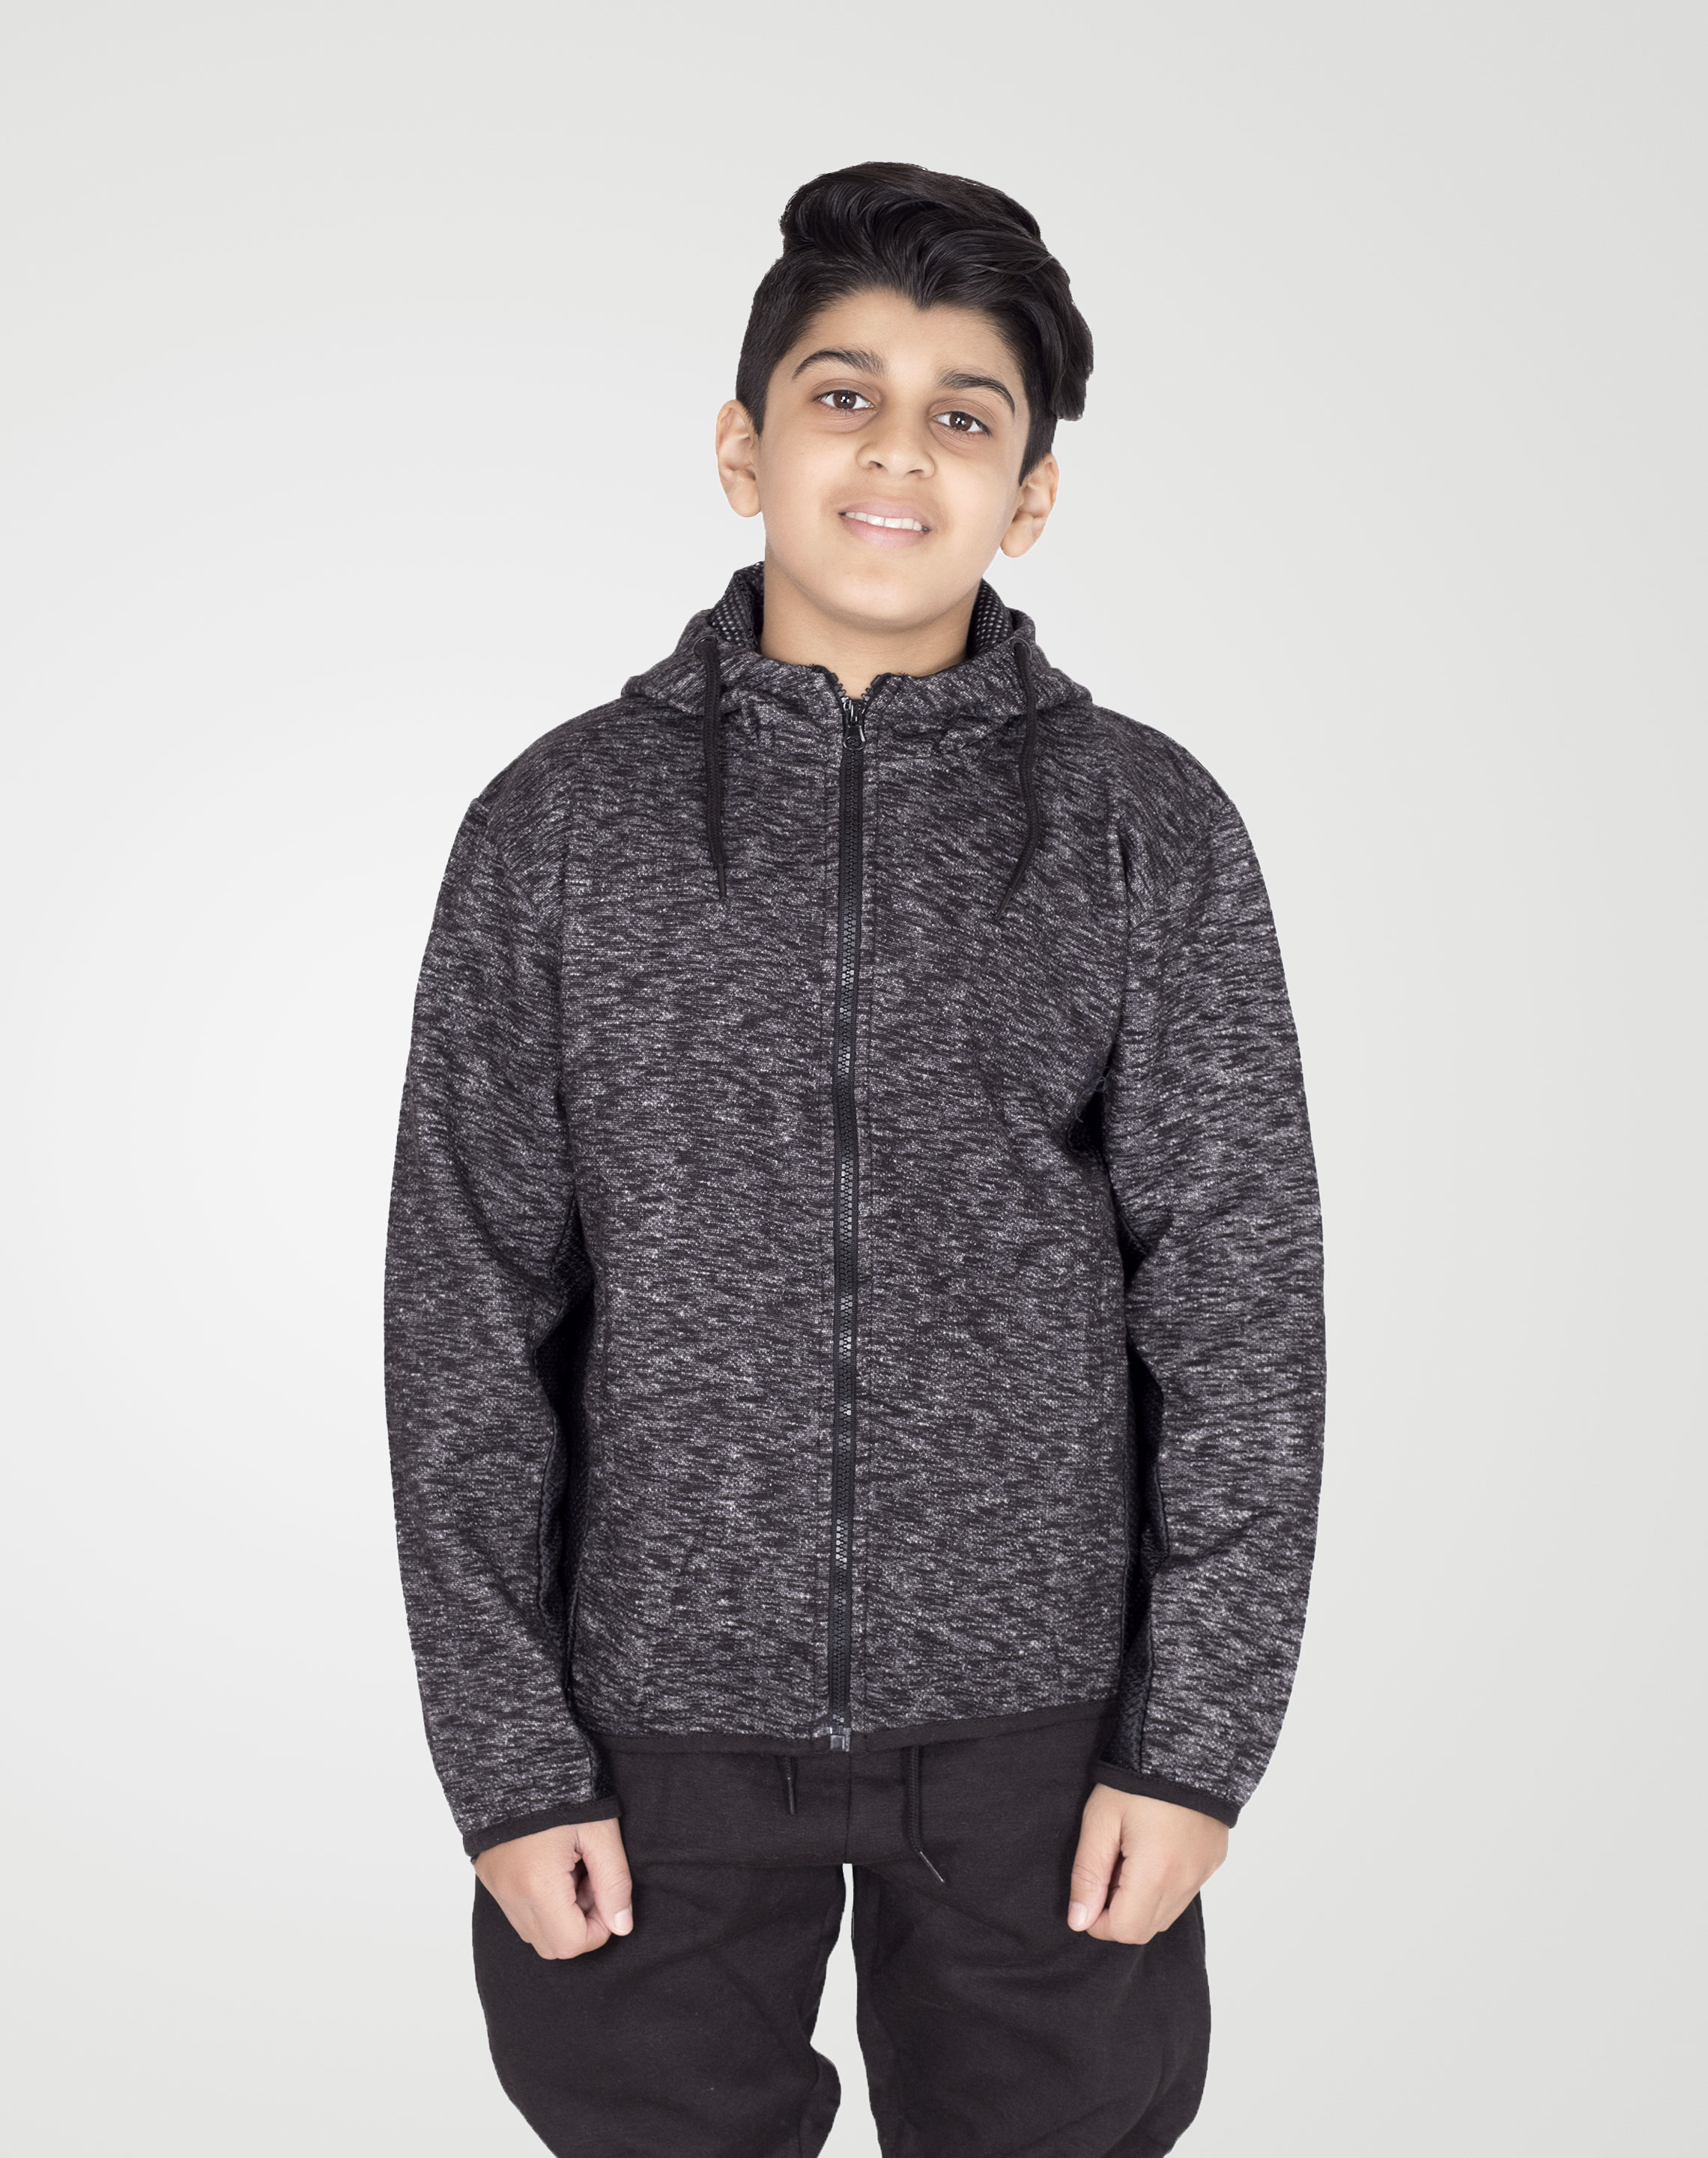 Image 1 of Boys Marl Mesh Tracksuit color Black and sizes 5-6, 7-8, 9-10, 11-12, 13 from Noroze